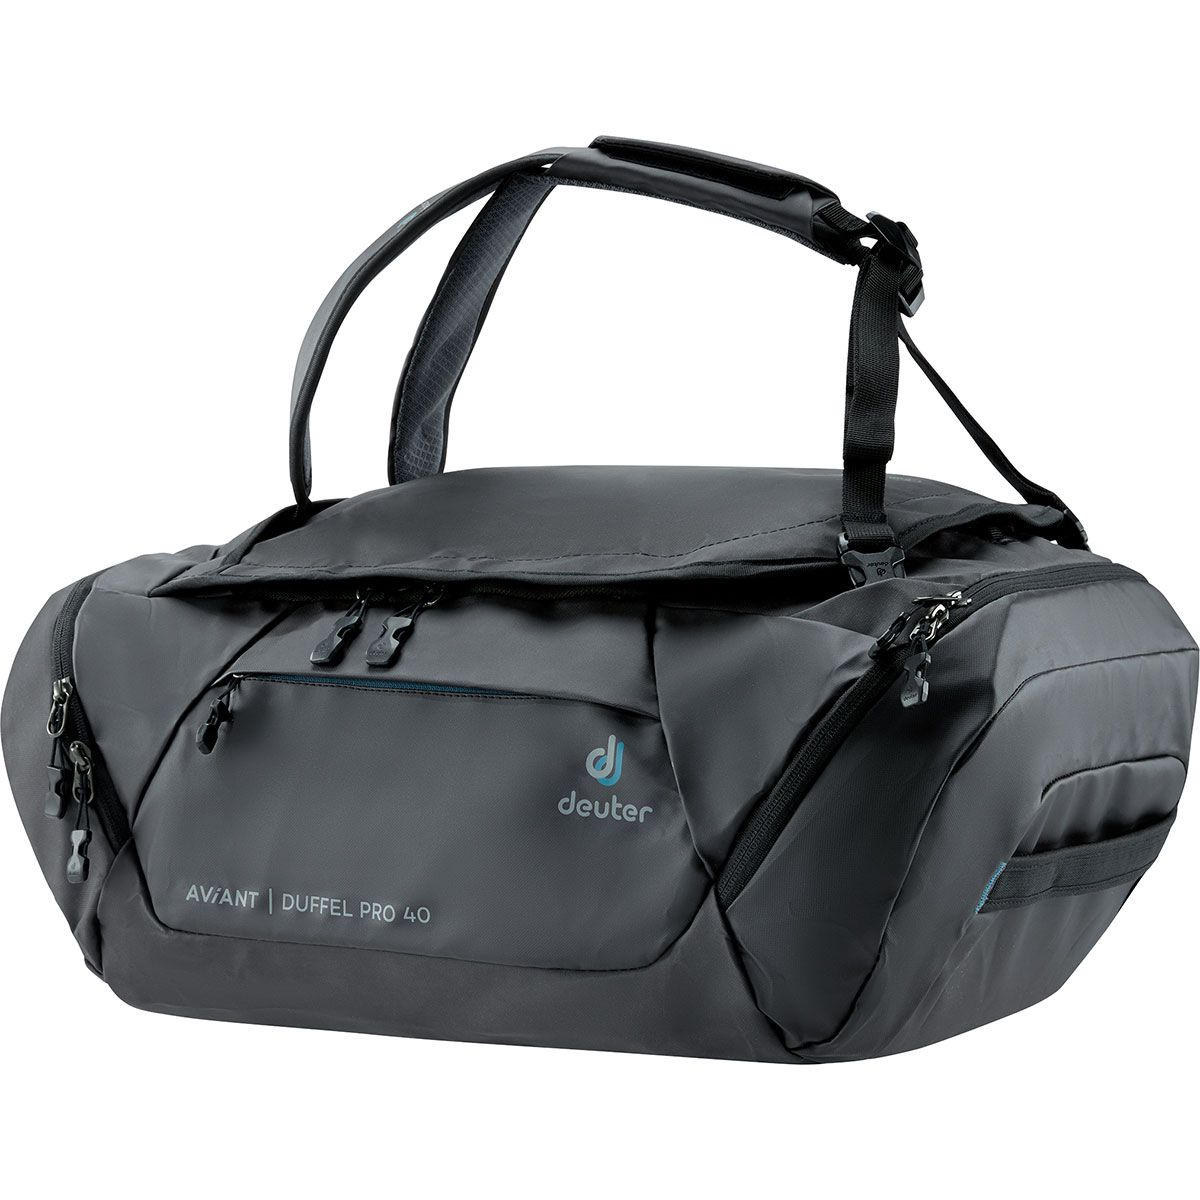 Deuter duffel bag